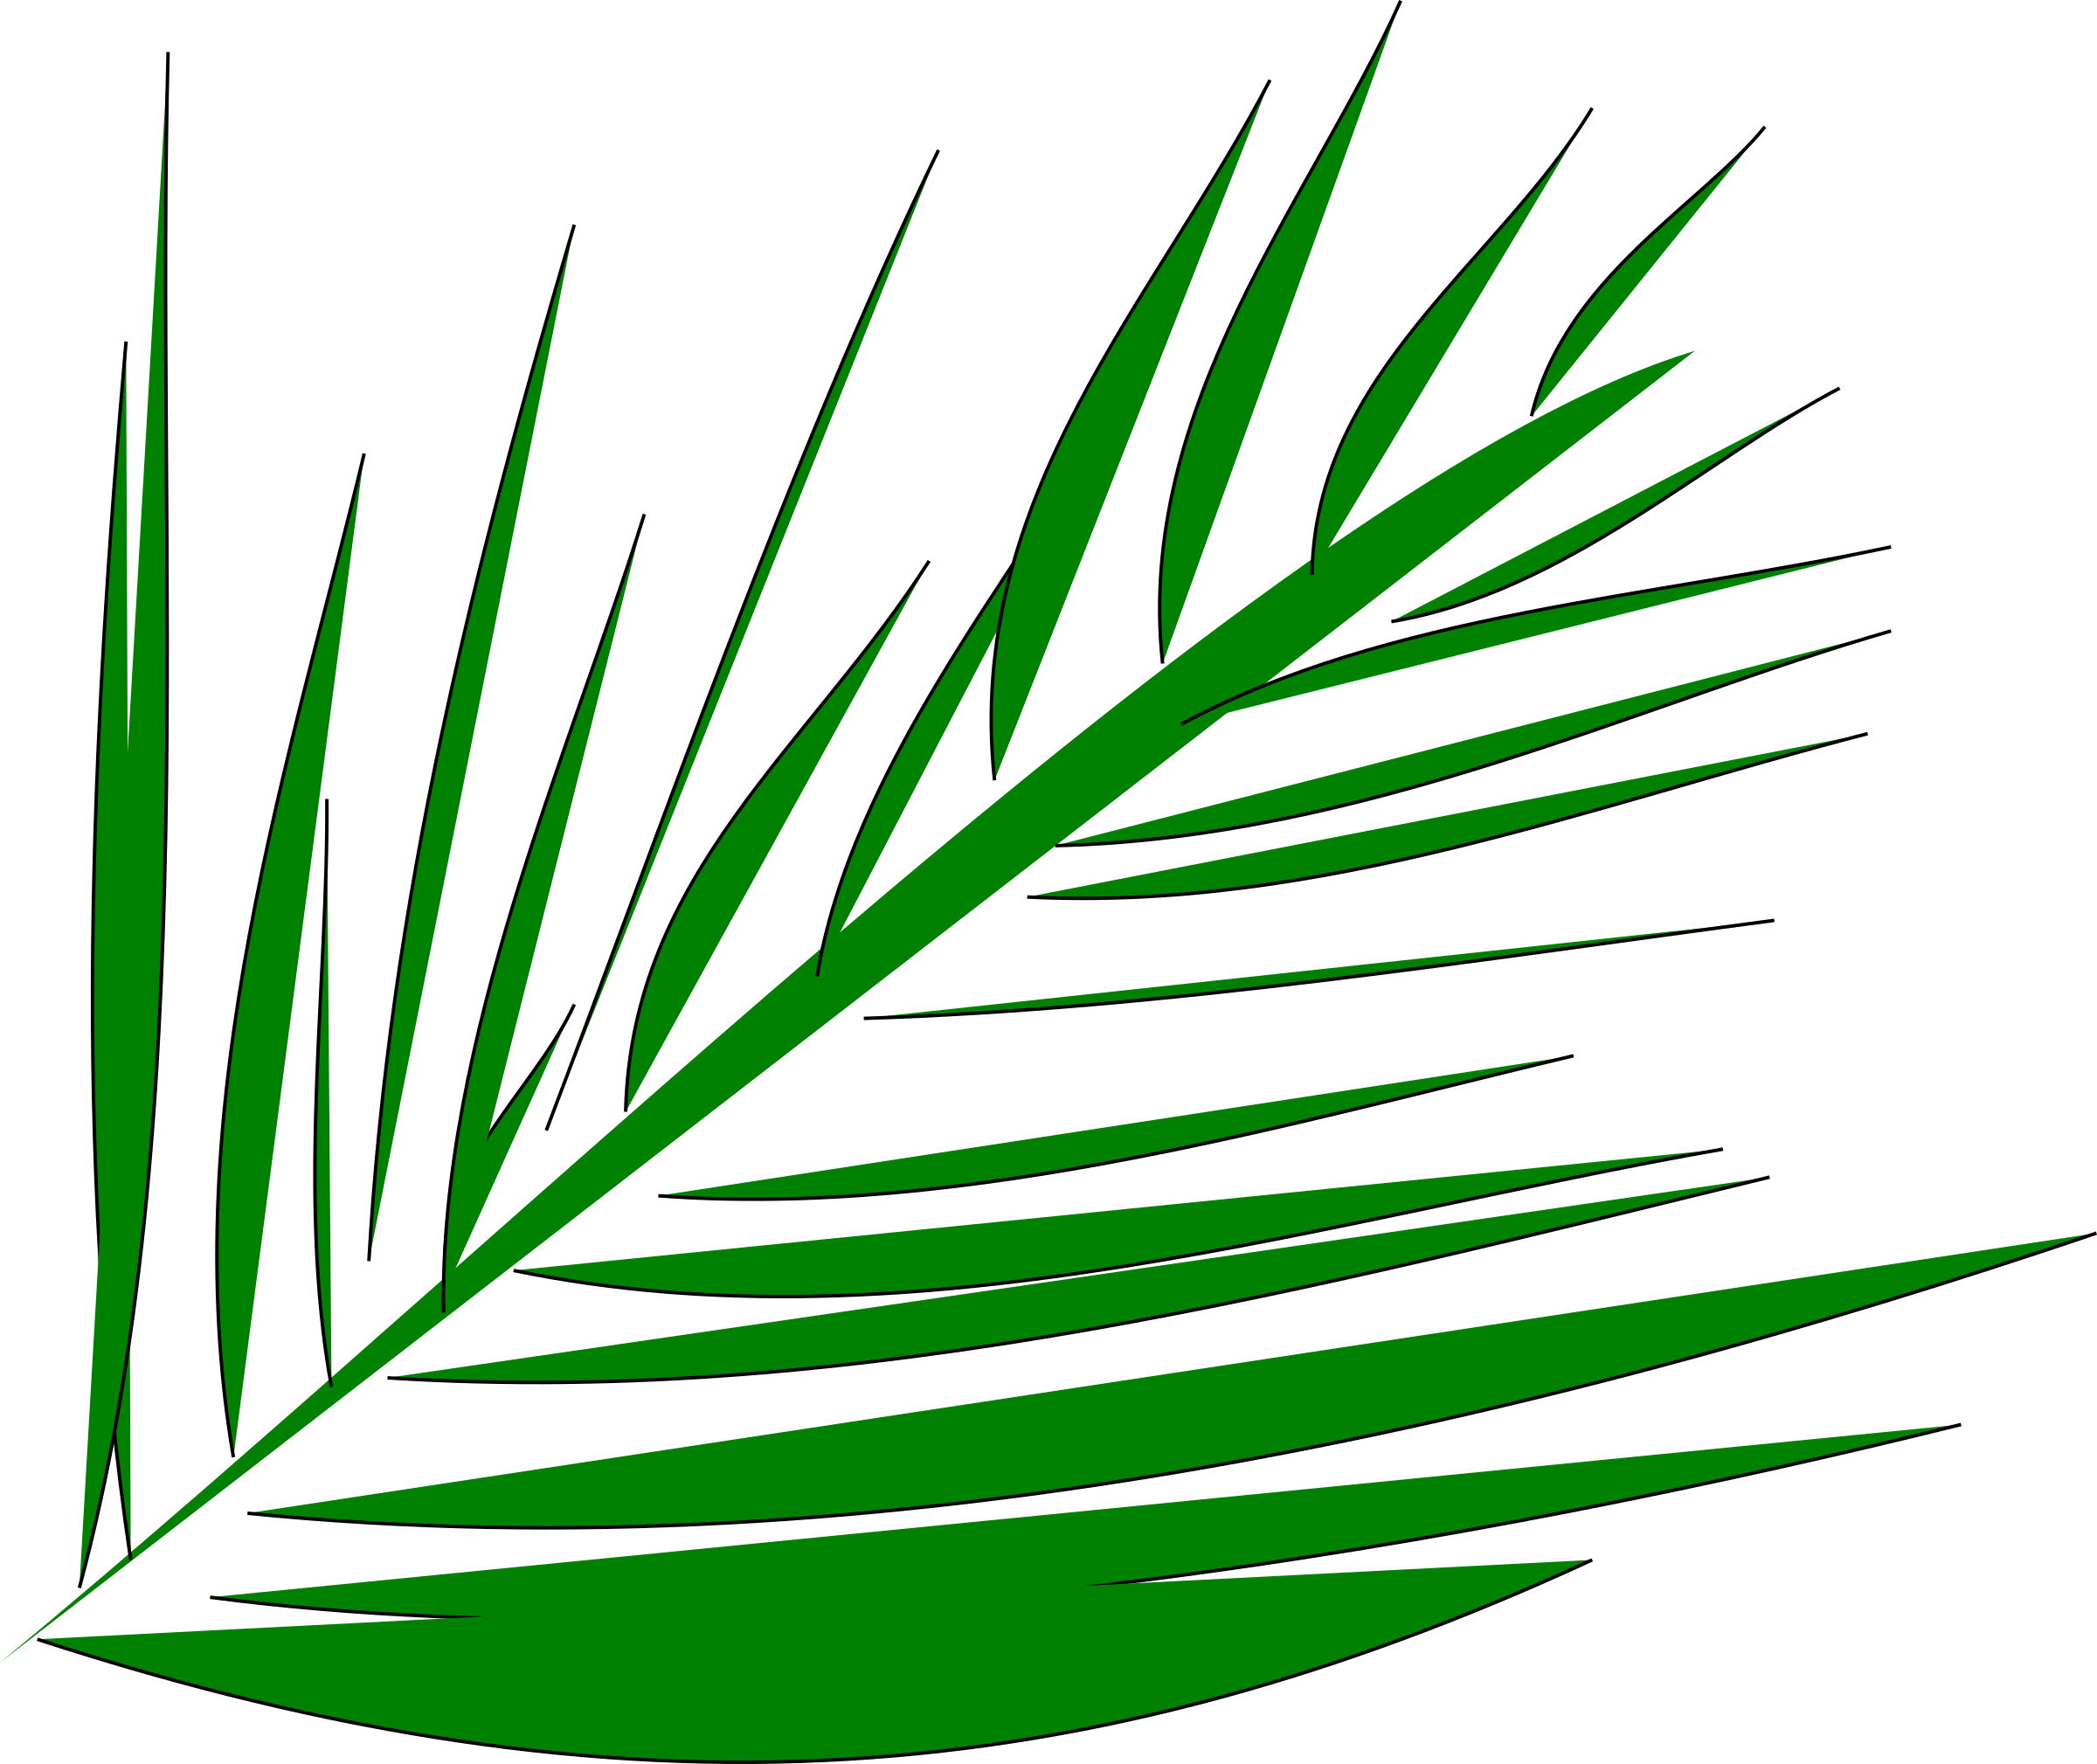 Palmleaf by spevi